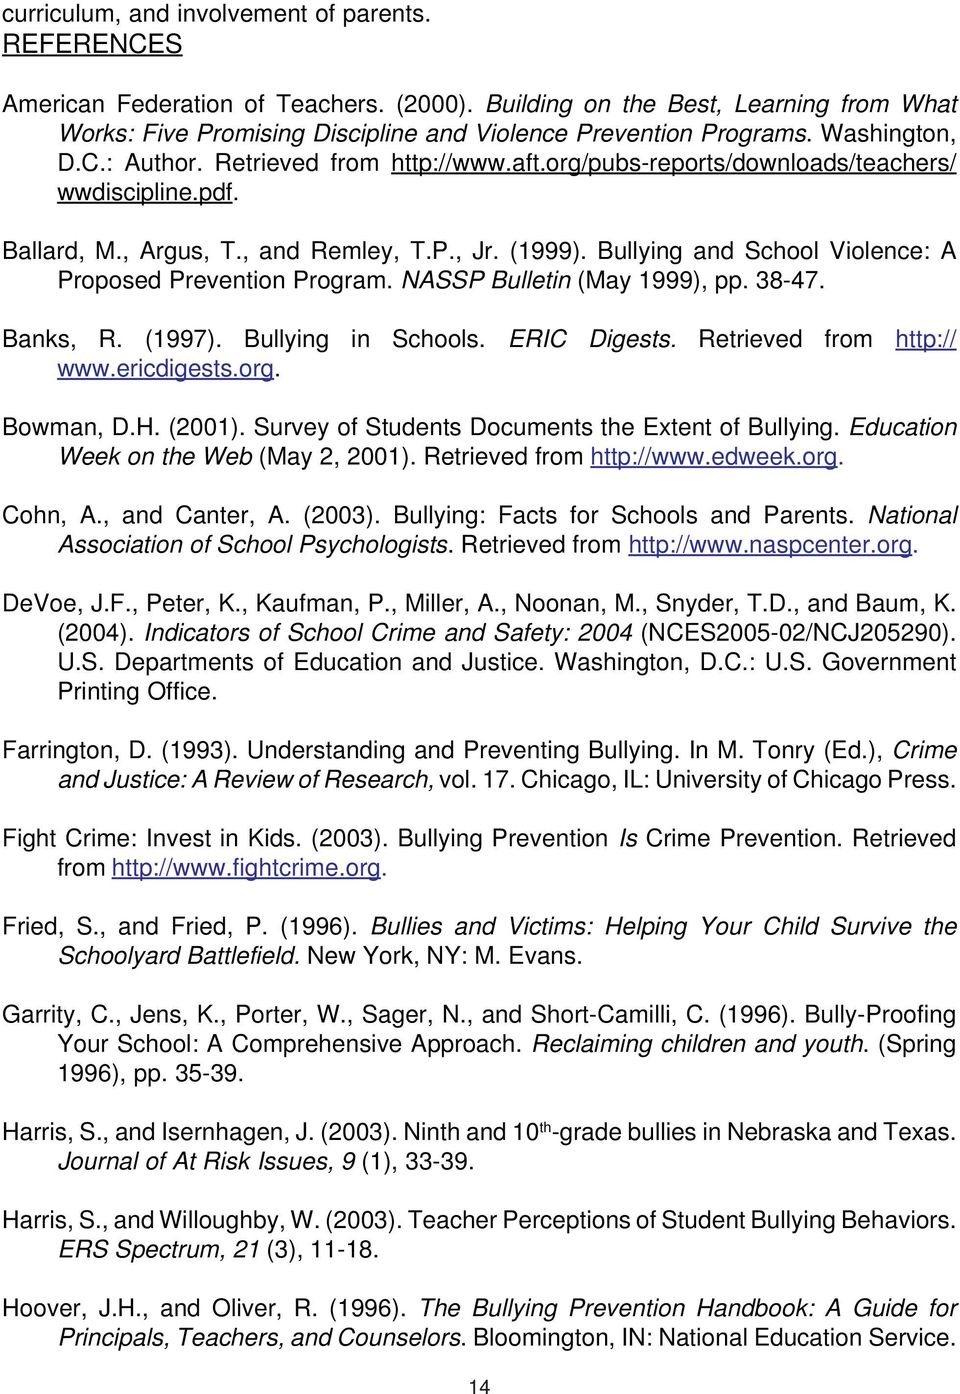 city where i live essay nainital